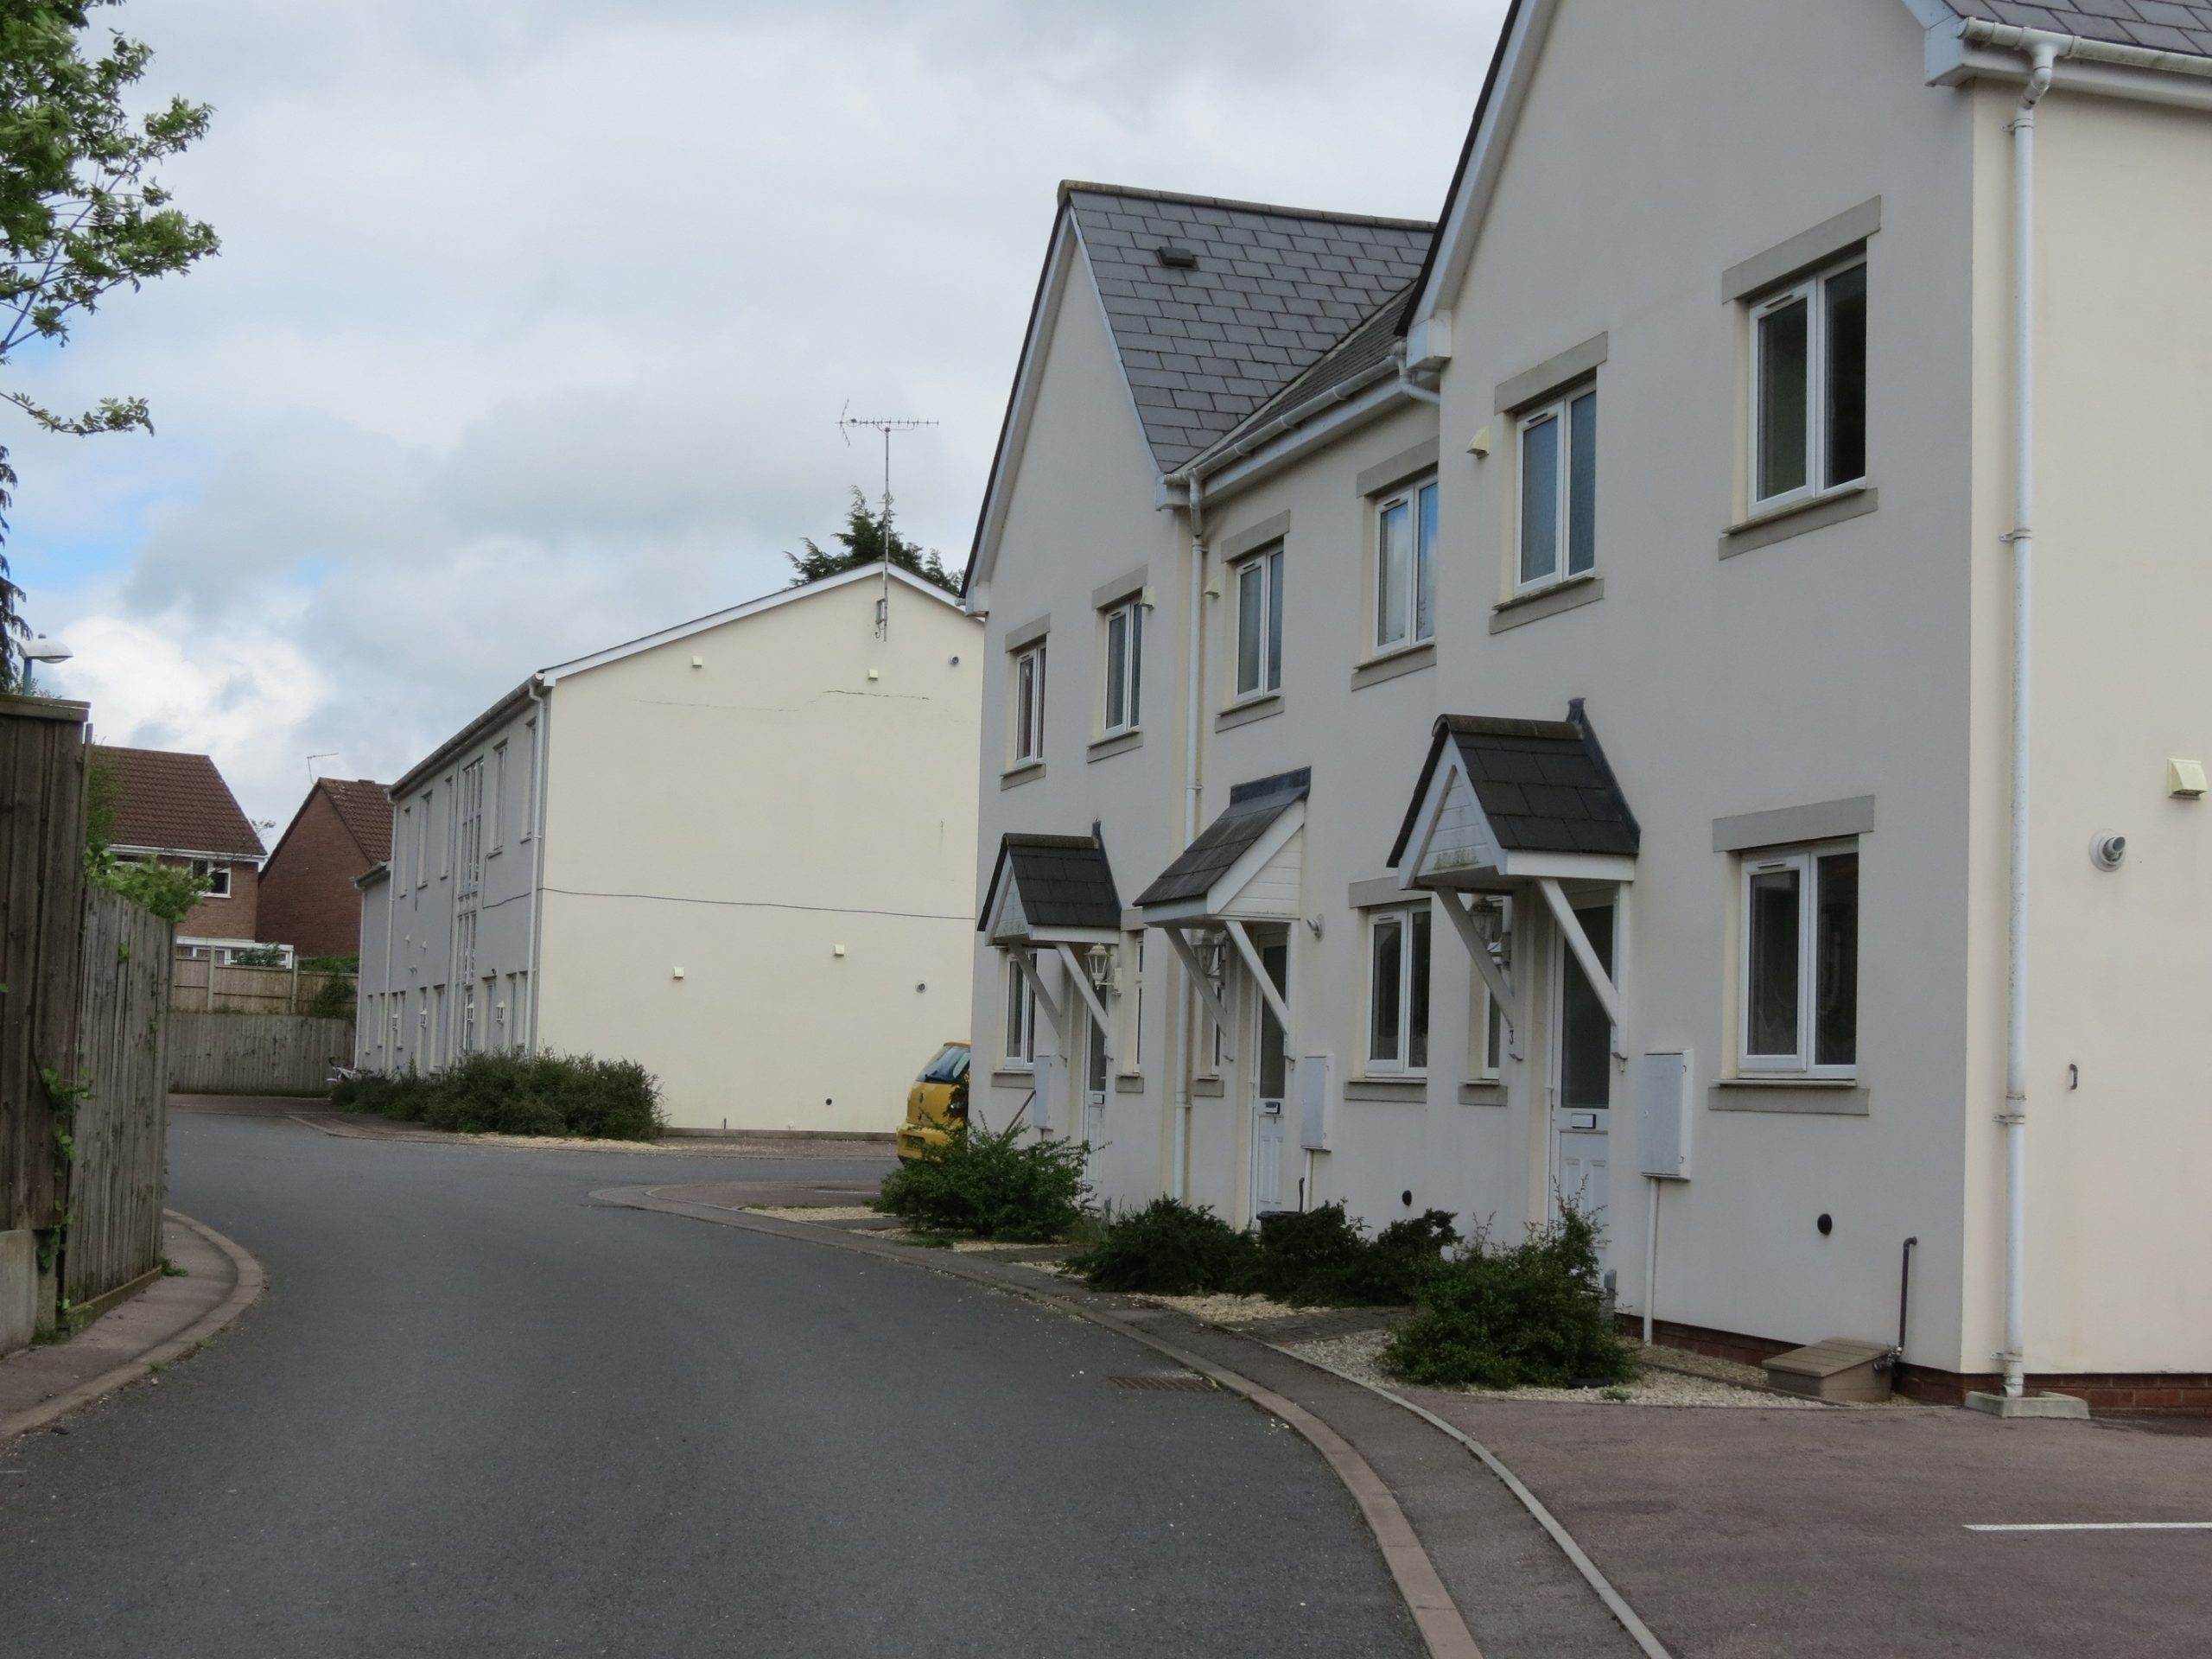 Newly built white houses facing an empty road at The Old Bakery, Bream, Gloucestershire